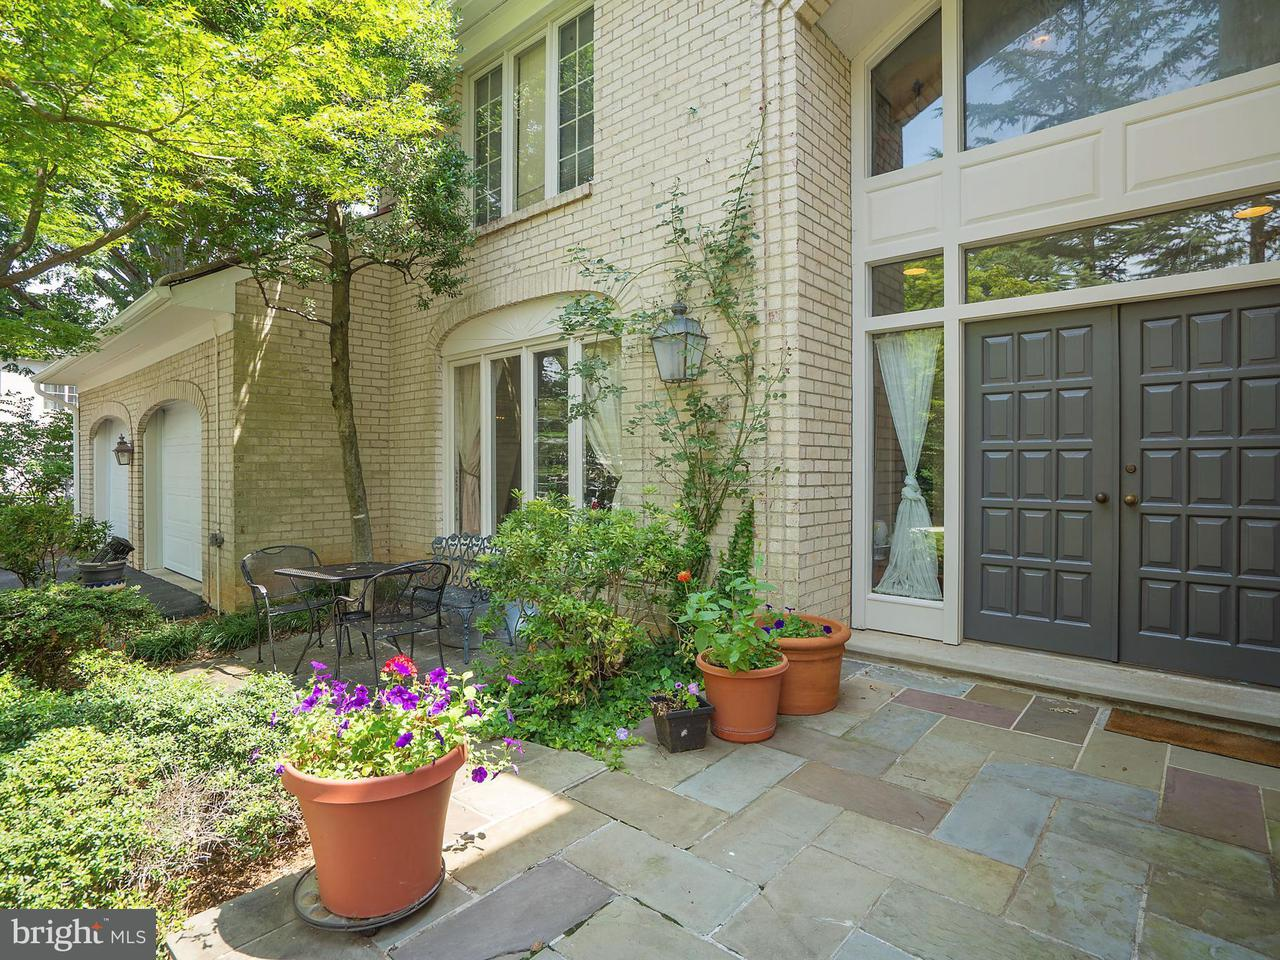 Single Family Home for Sale at 10520 DEMOCRACY BLVD 10520 DEMOCRACY BLVD Rockville, Maryland 20854 United States